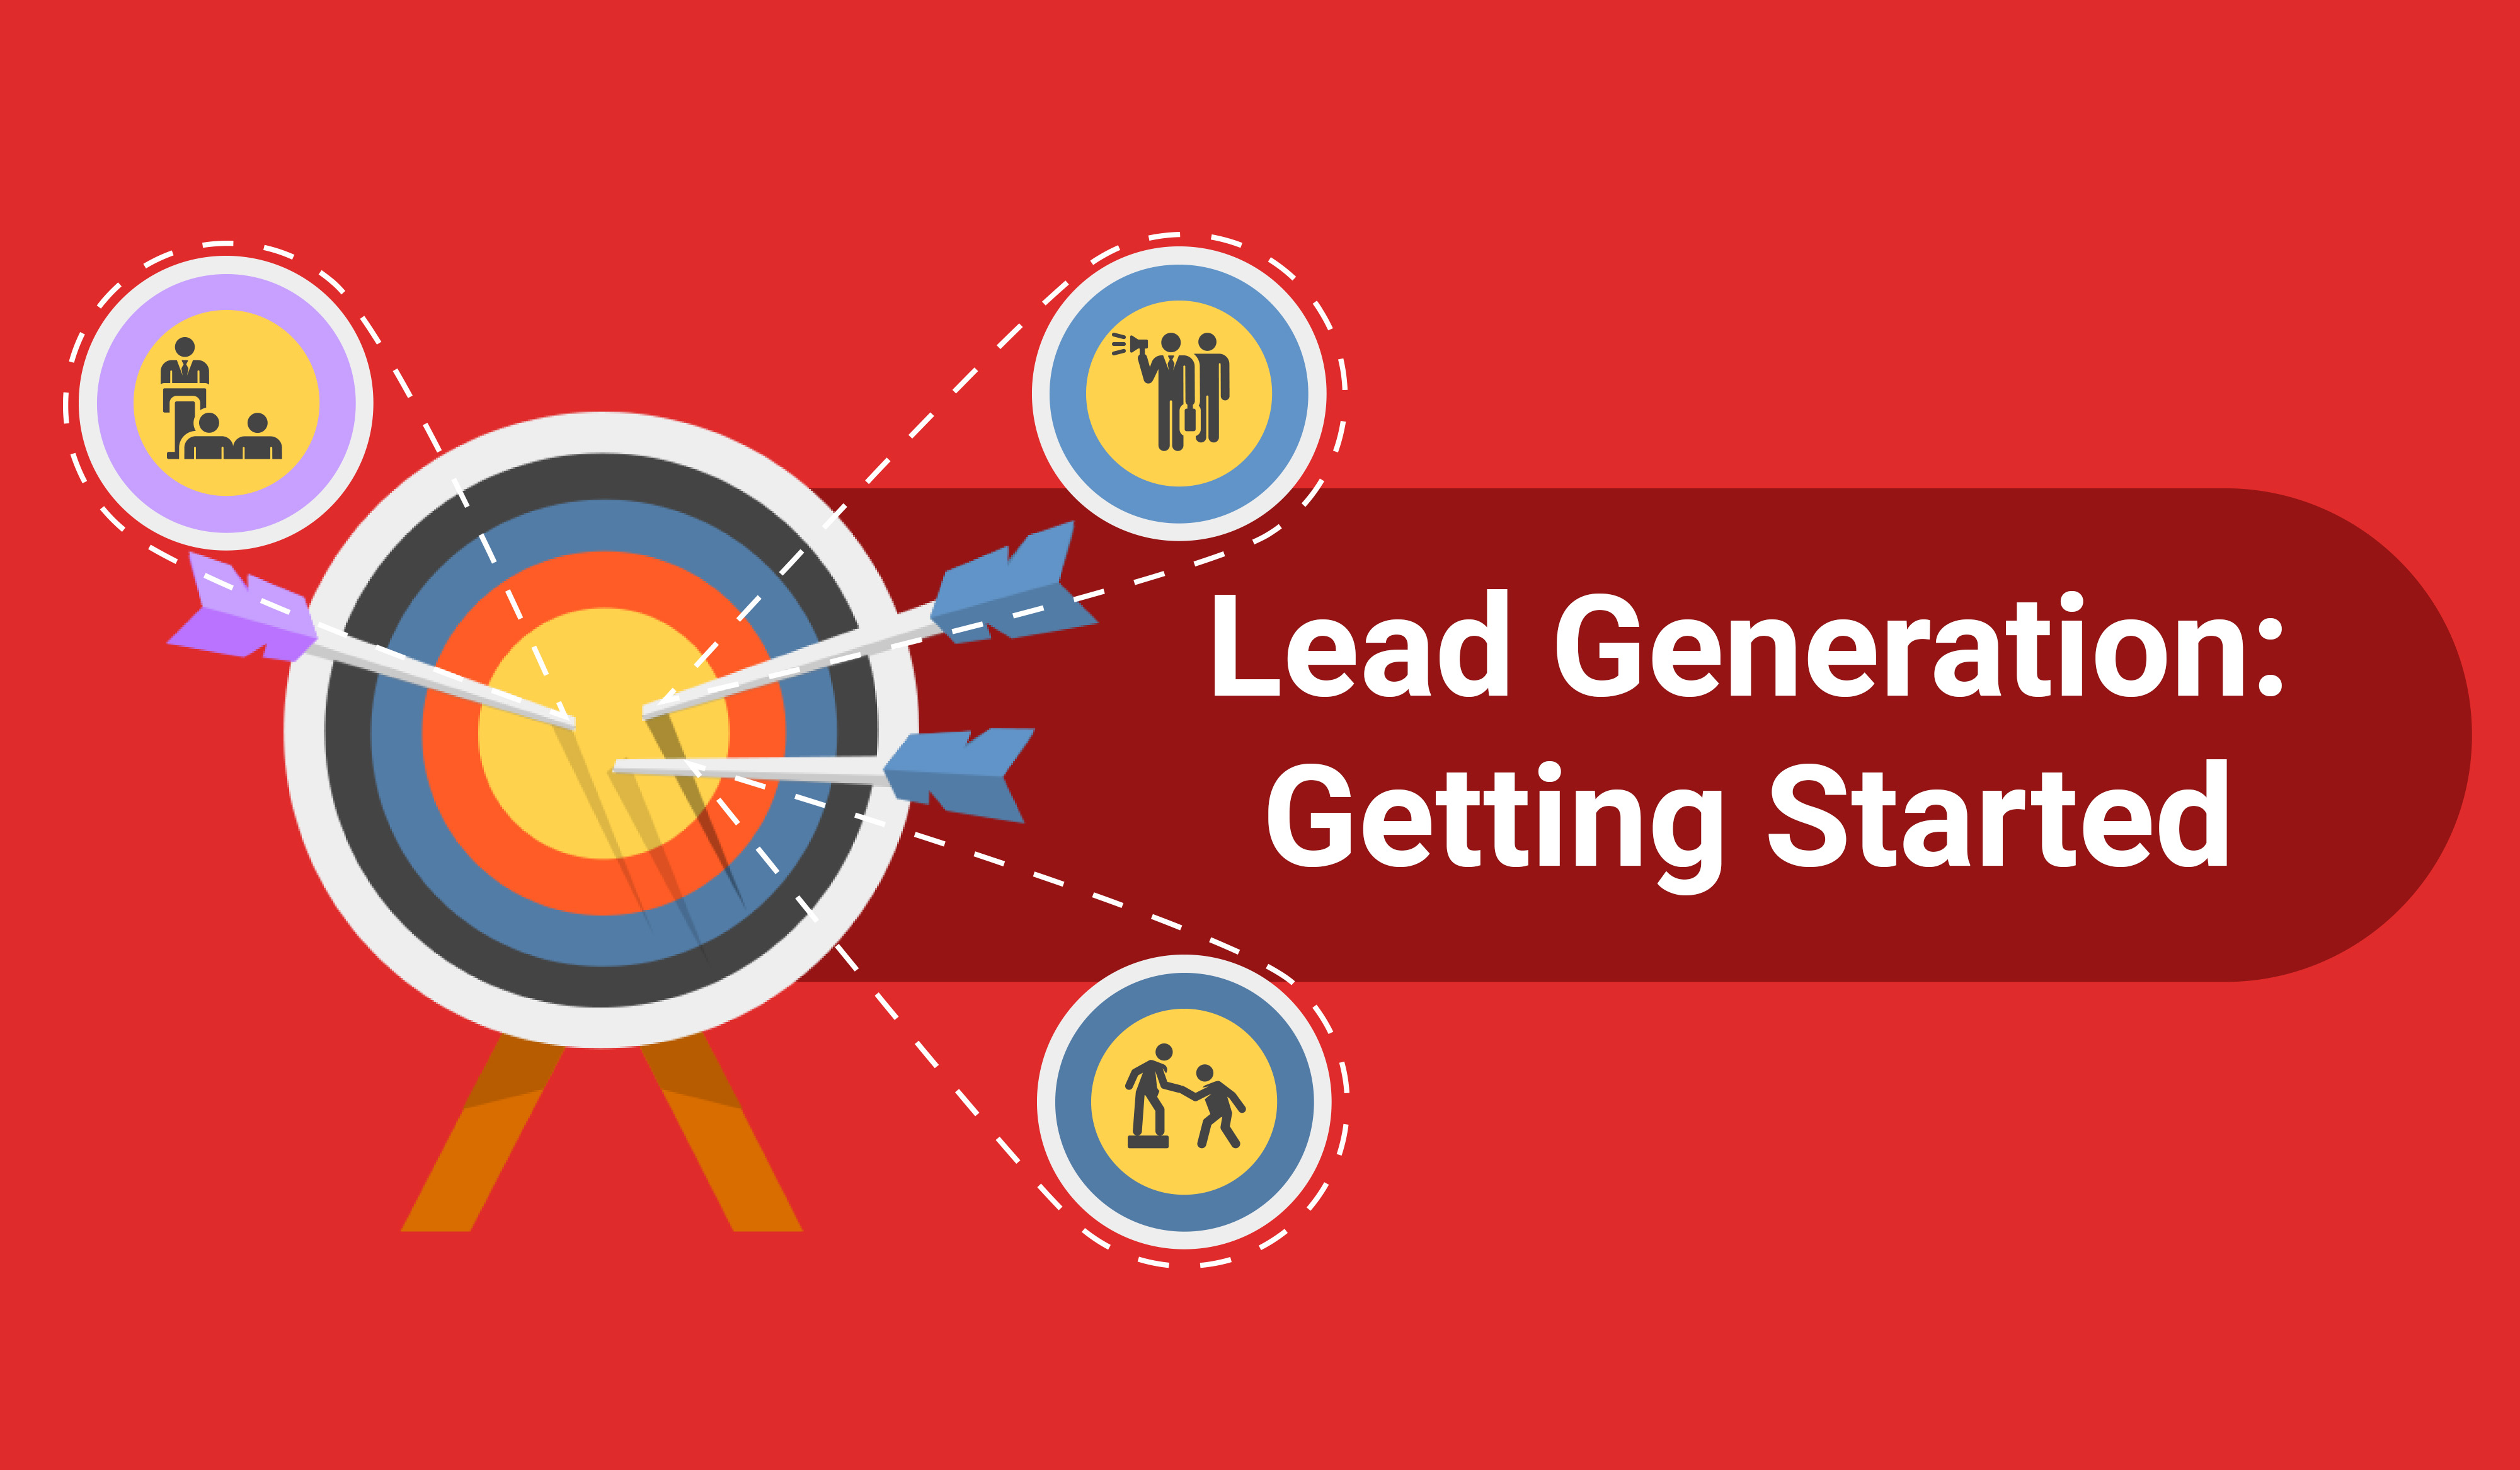 Lead Generation: Getting Started